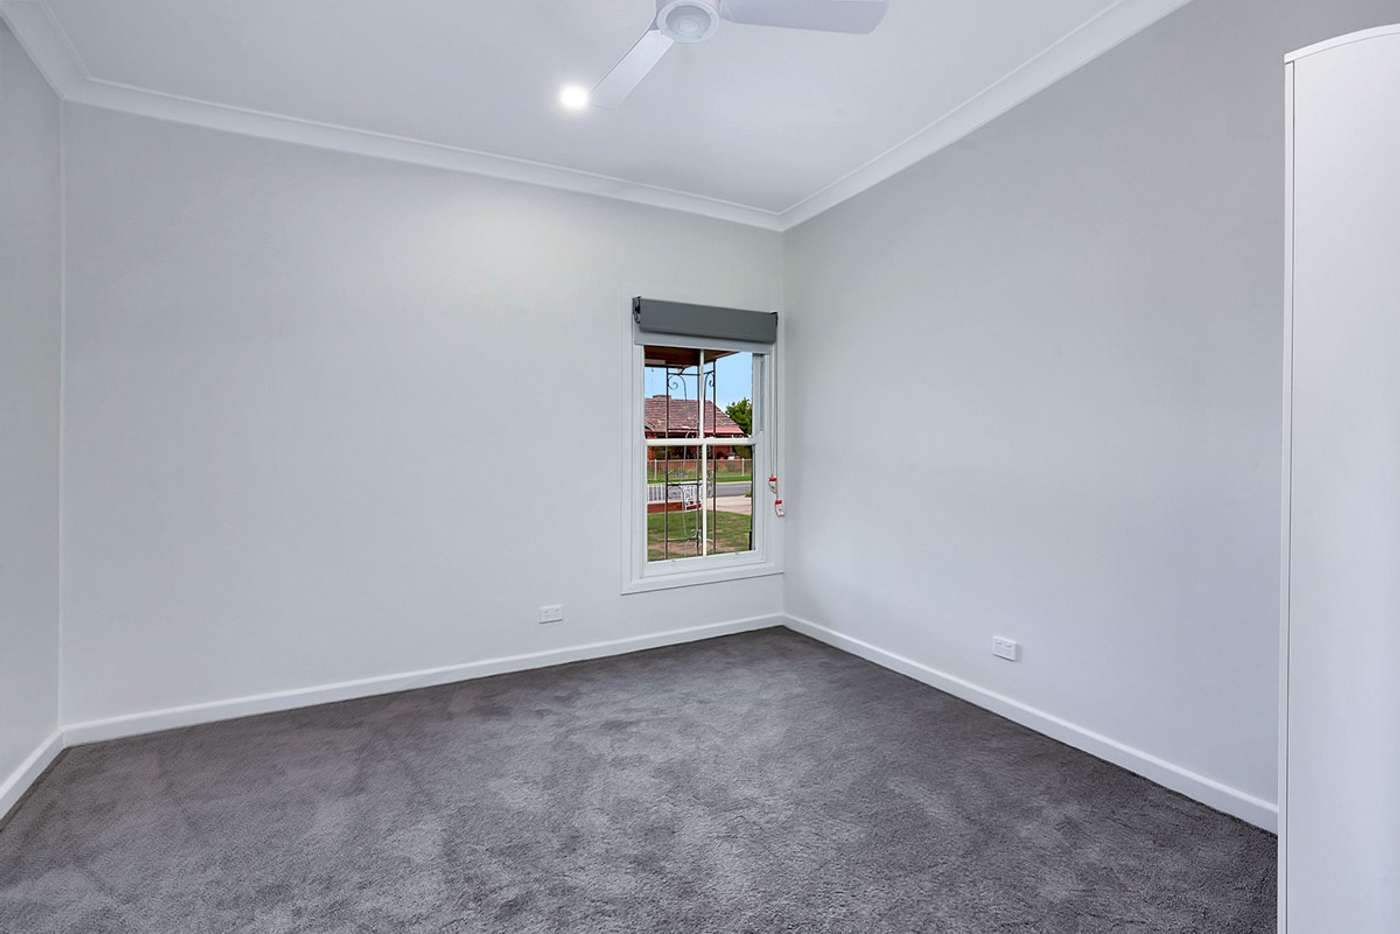 Seventh view of Homely house listing, 18 Smith Crescent, Wangaratta VIC 3677